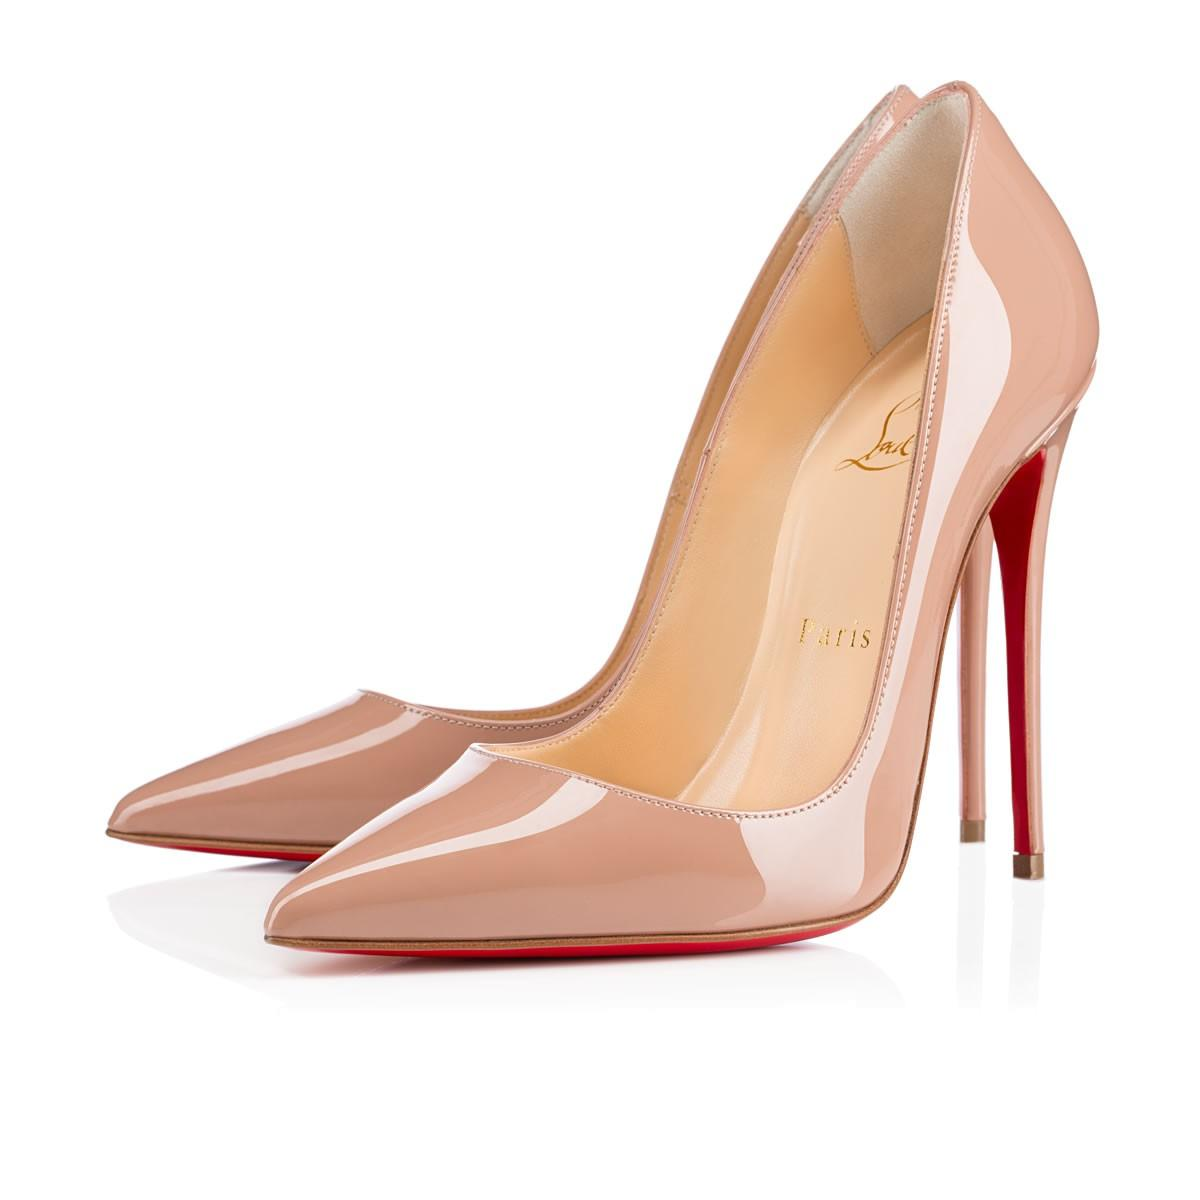 0073864e5 christian louboutin black red bottom heels blue christian louboutin ...